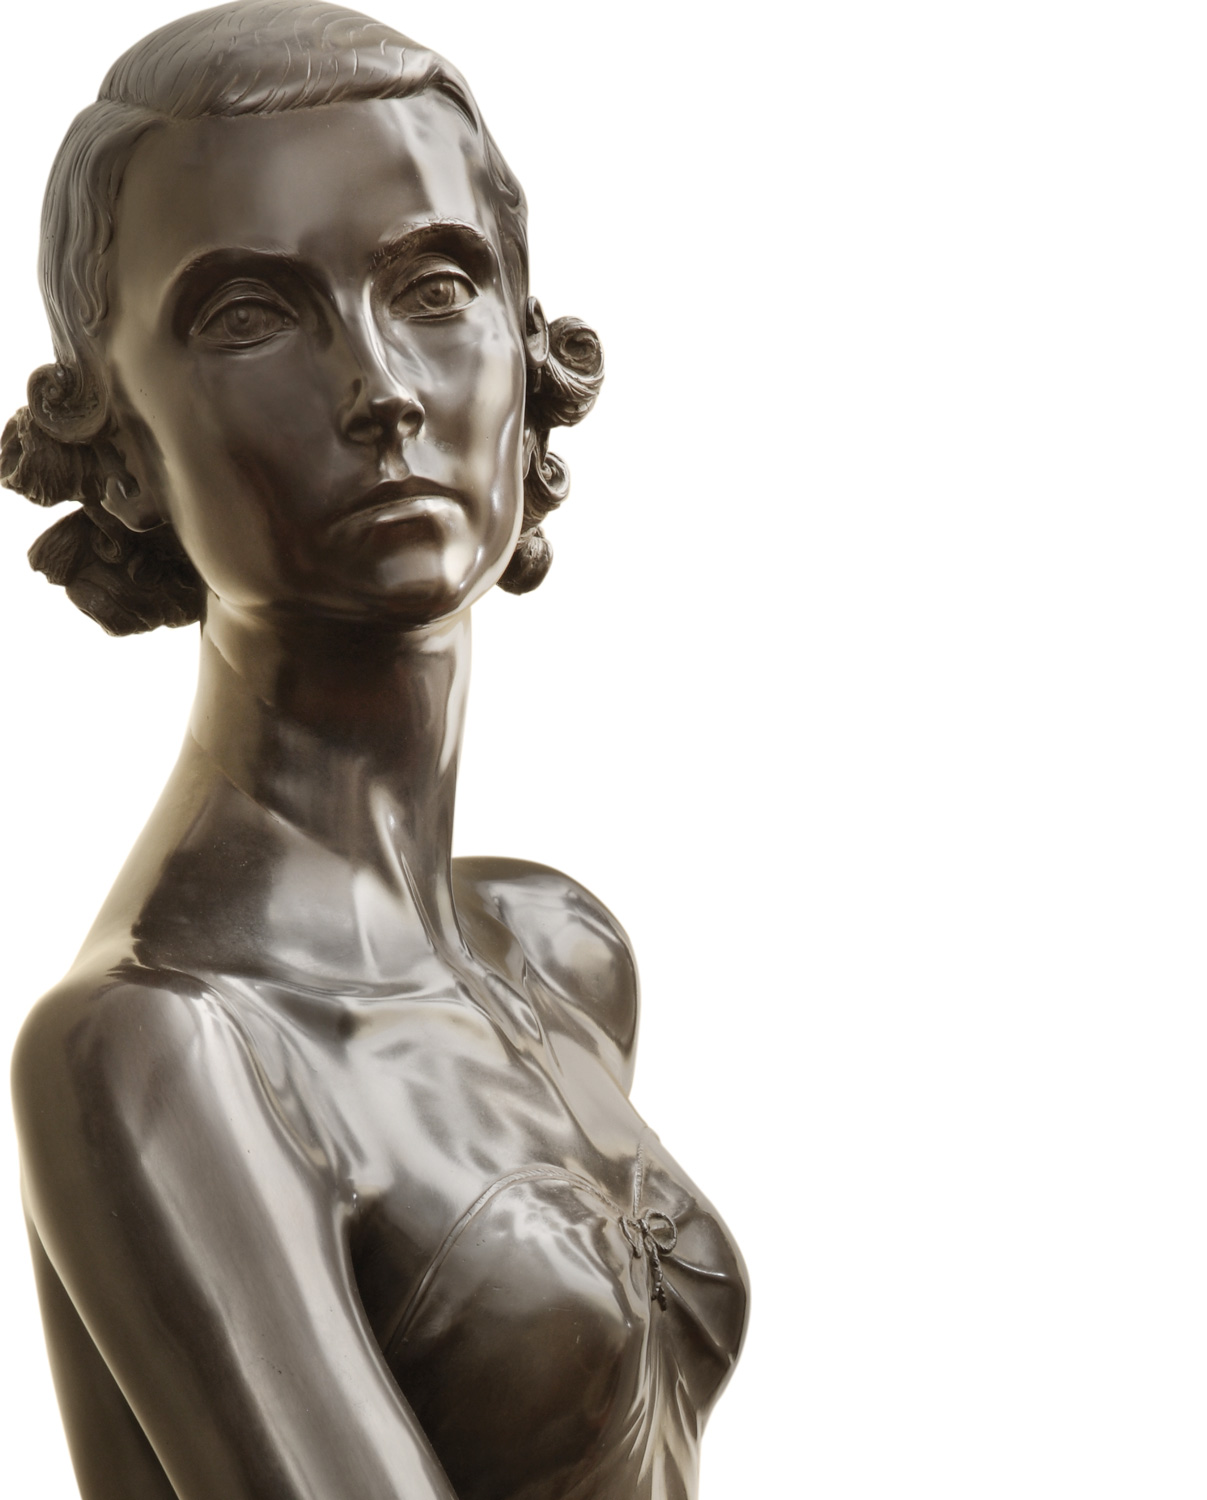 Barbara, original work of art by Antonio Berti. Bronze sculpture for sale, Pietro Bazzanti Art Gallery, Florence, Italy